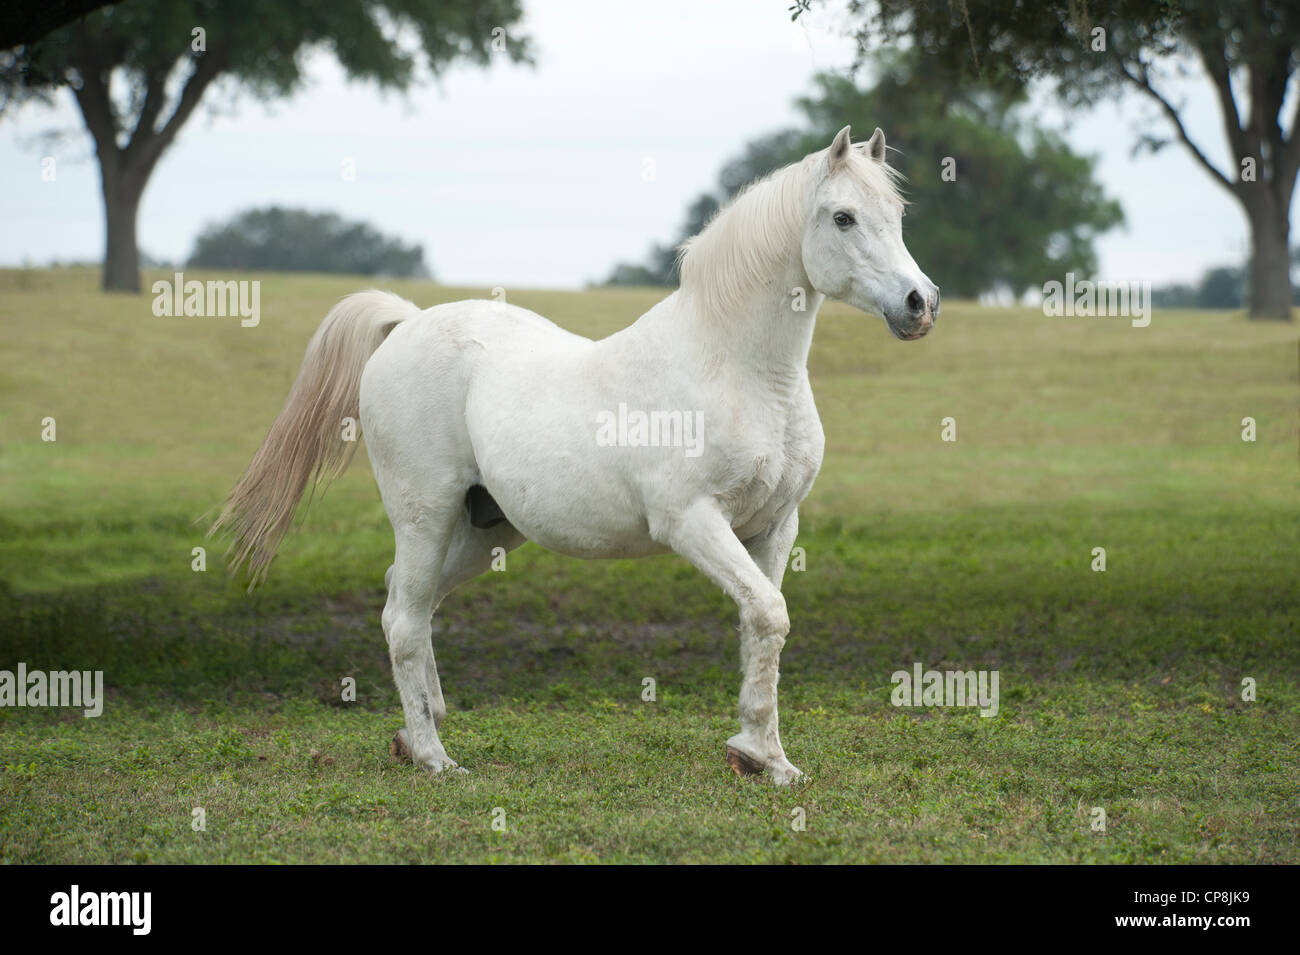 Arabian Horse High Resolution Stock Photography And Images Alamy